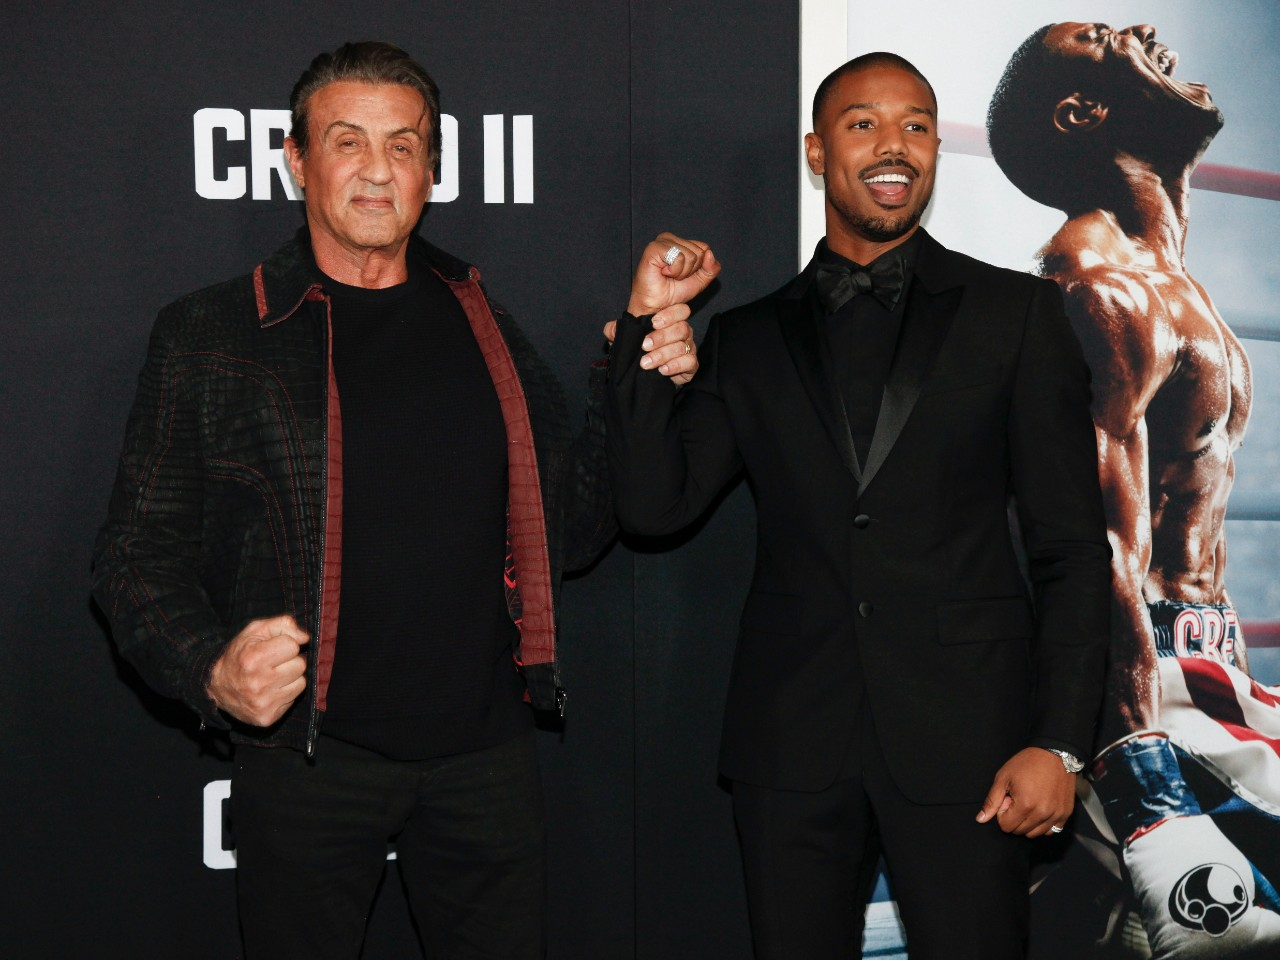 Sylvester Stallone, left, and Michael B. Jordan attend the world premiere of 'Creed II' in New York, on Nov. 14, 2018. (Andy Kropa / Invision / AP)